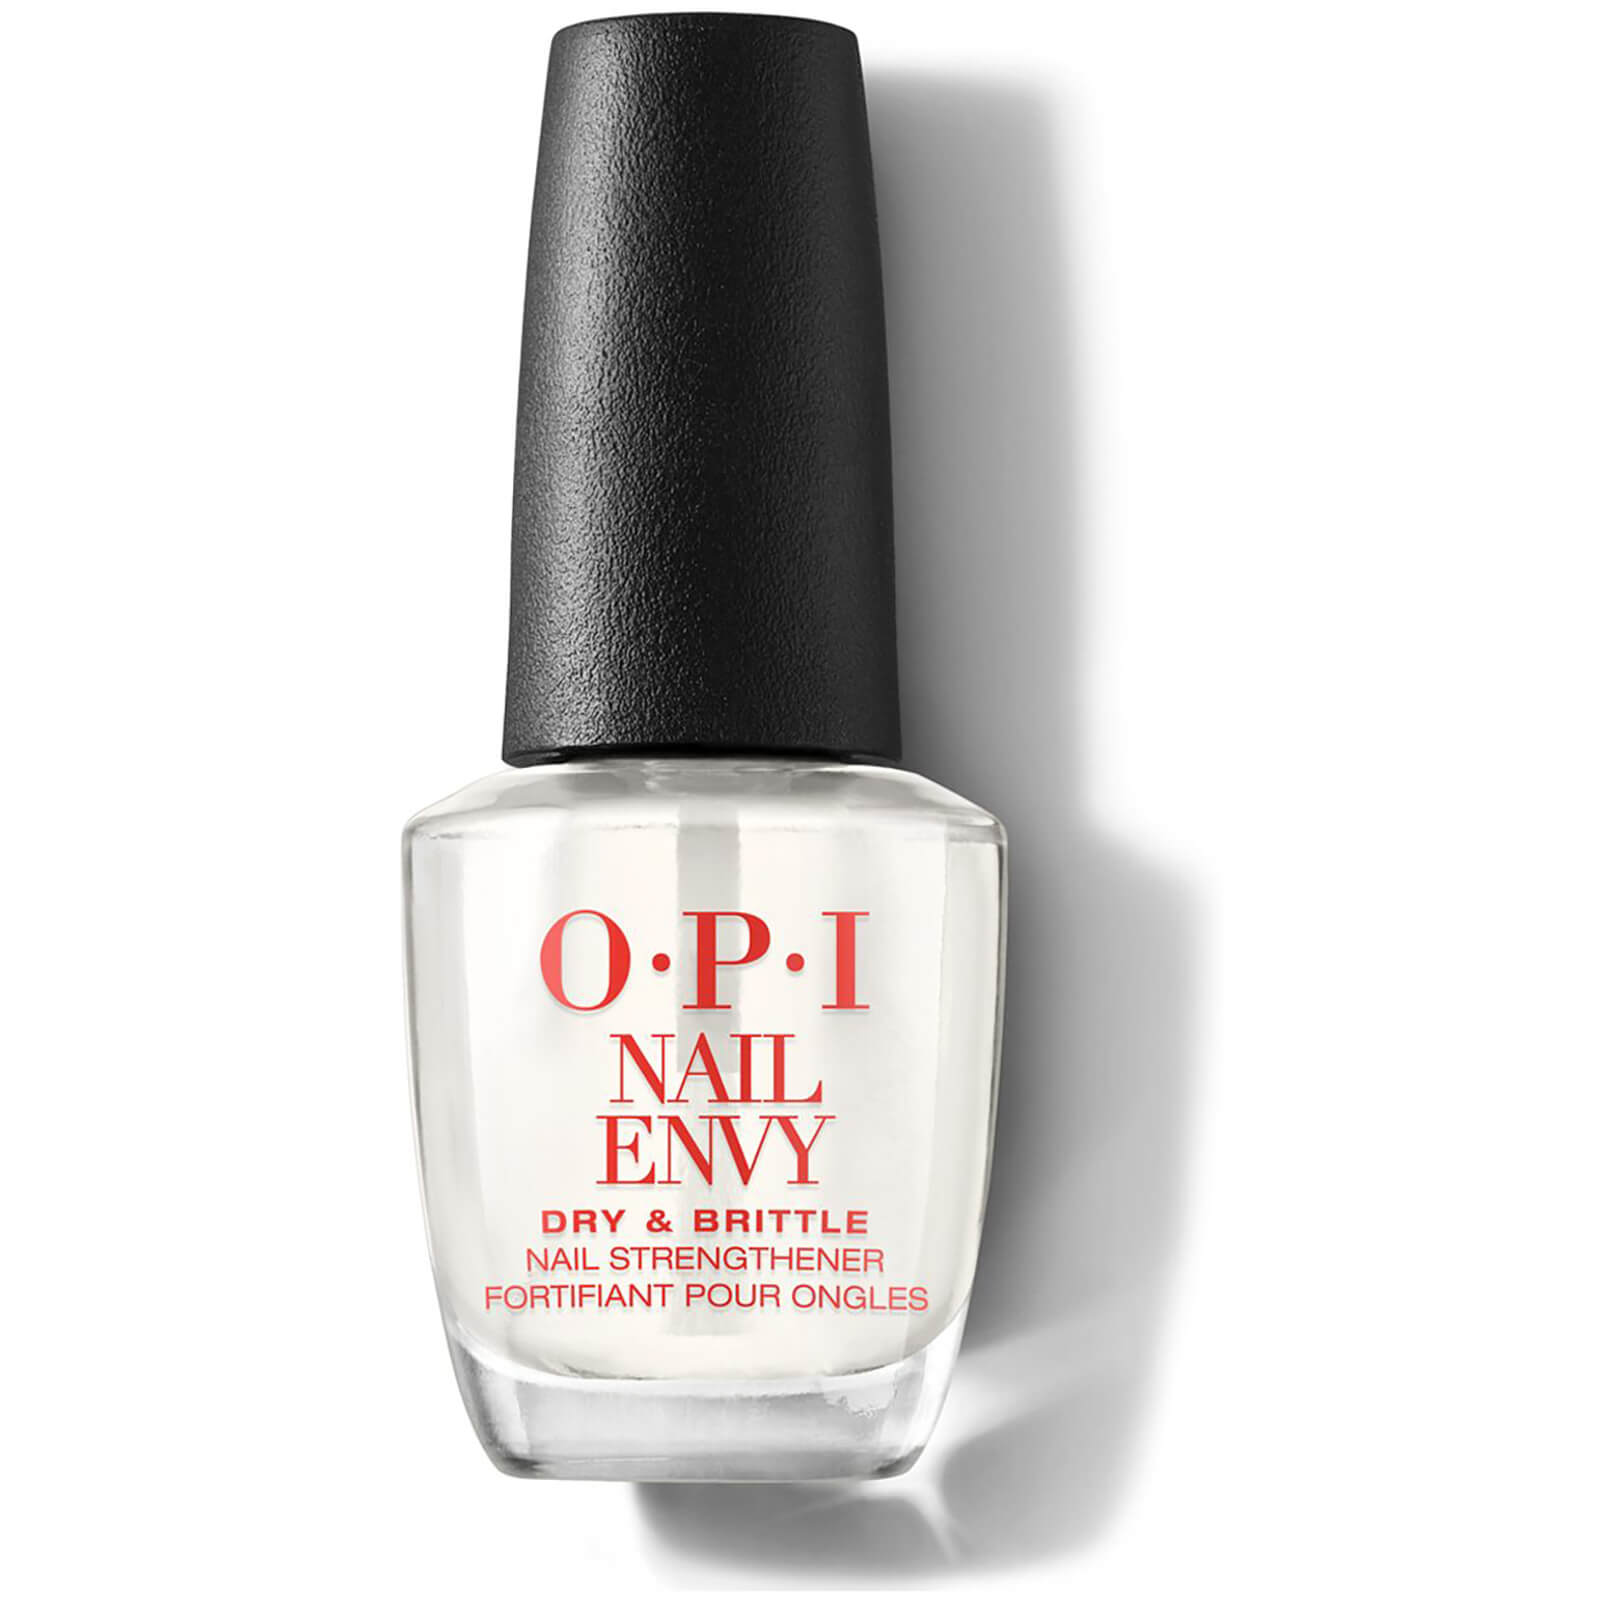 Tratamiento Nail Envy de OPI - Dry and Brittle